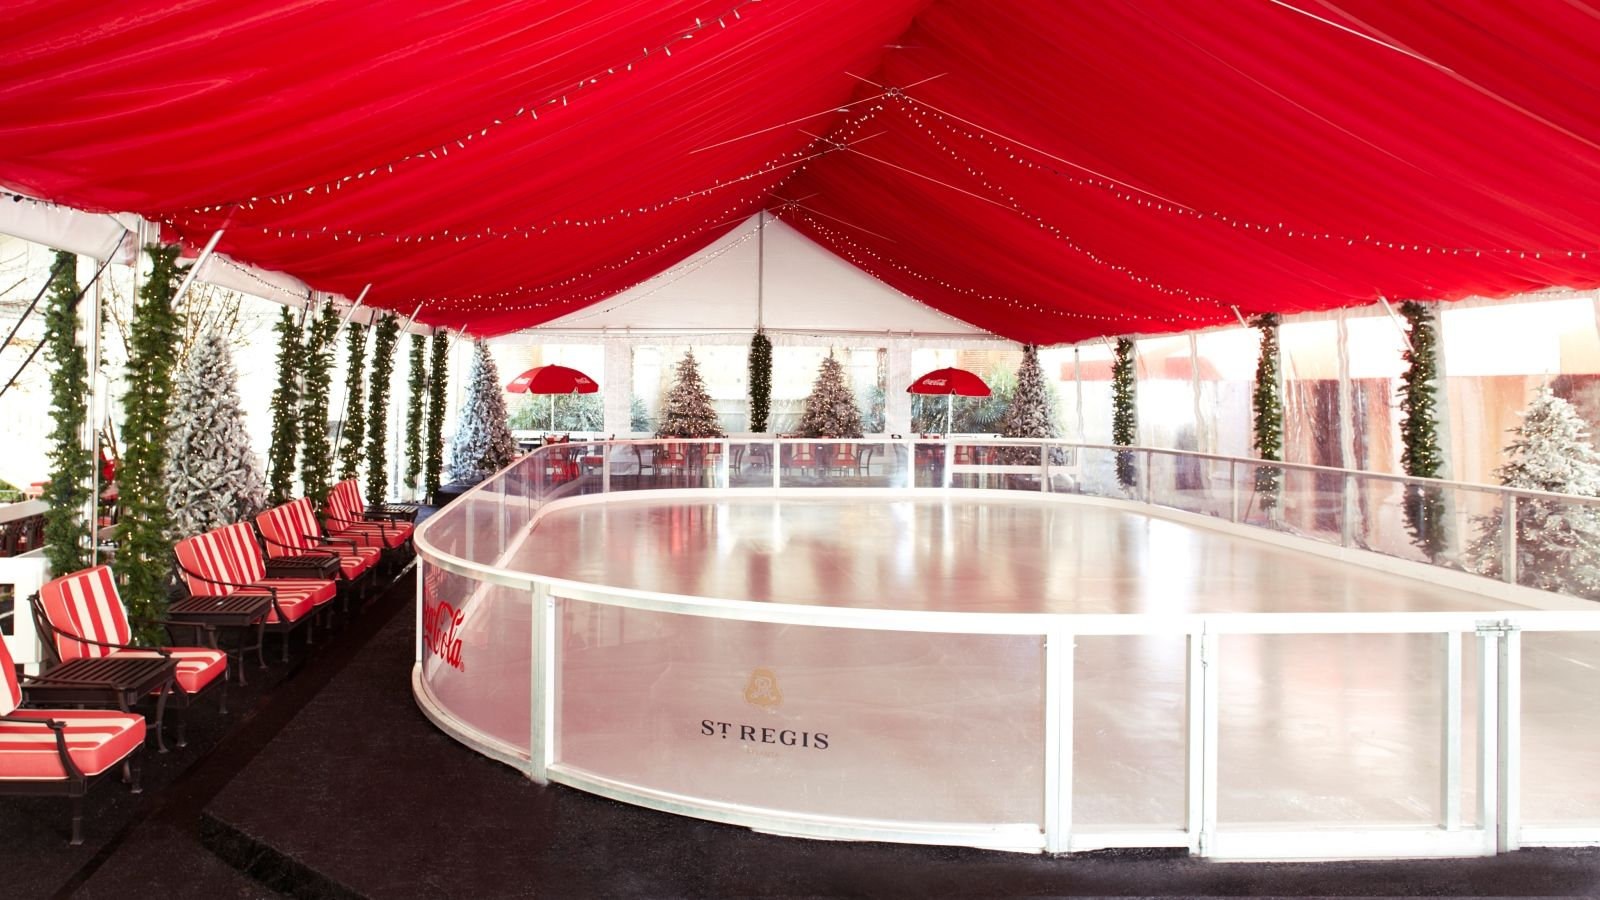 Atlanta Ice Skating Rink - st regis atlanta